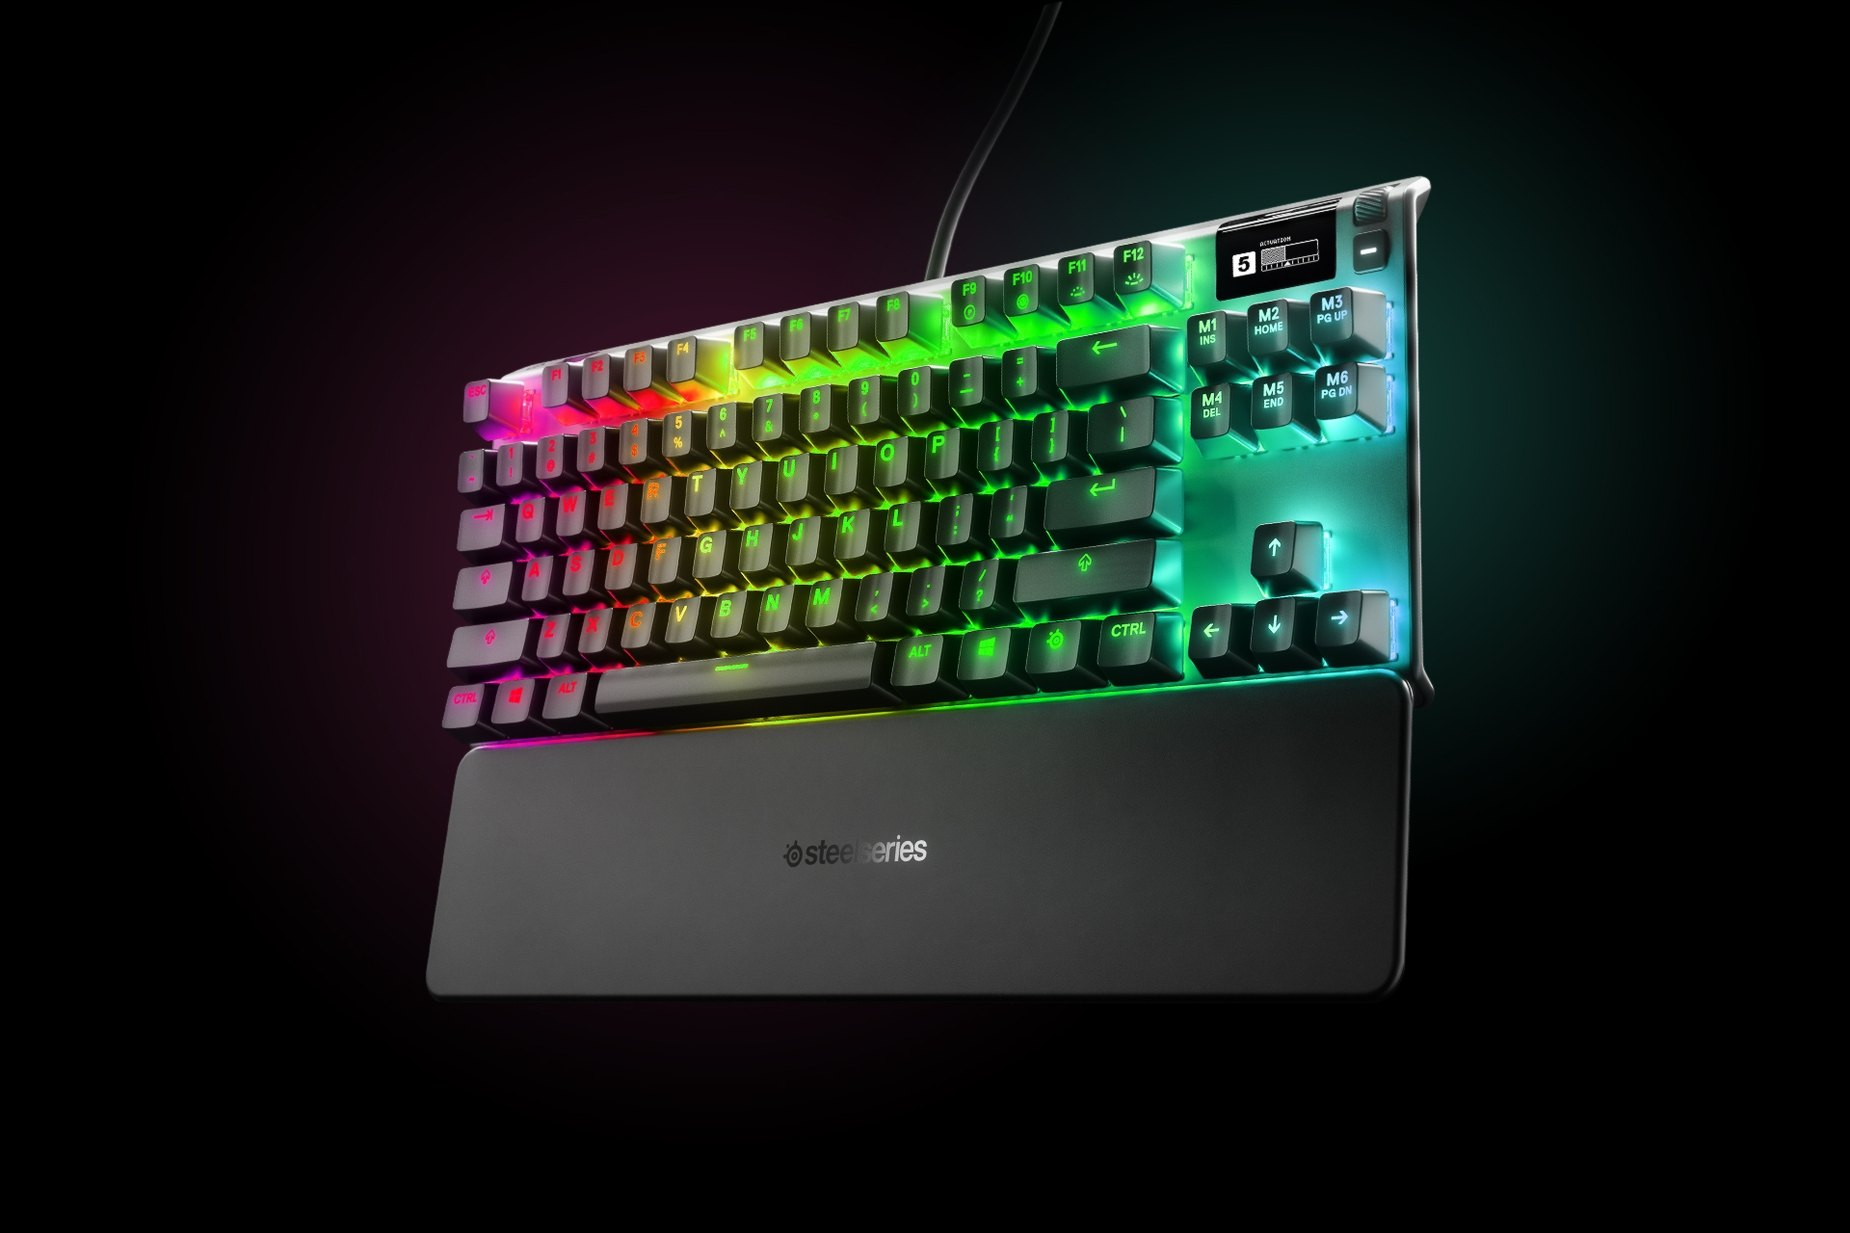 German - Apex Pro TKL gaming keyboard with the illumination lit up on dark background, also shows the OLED screen and controls used to change settings, switch actuation, and adjust audio